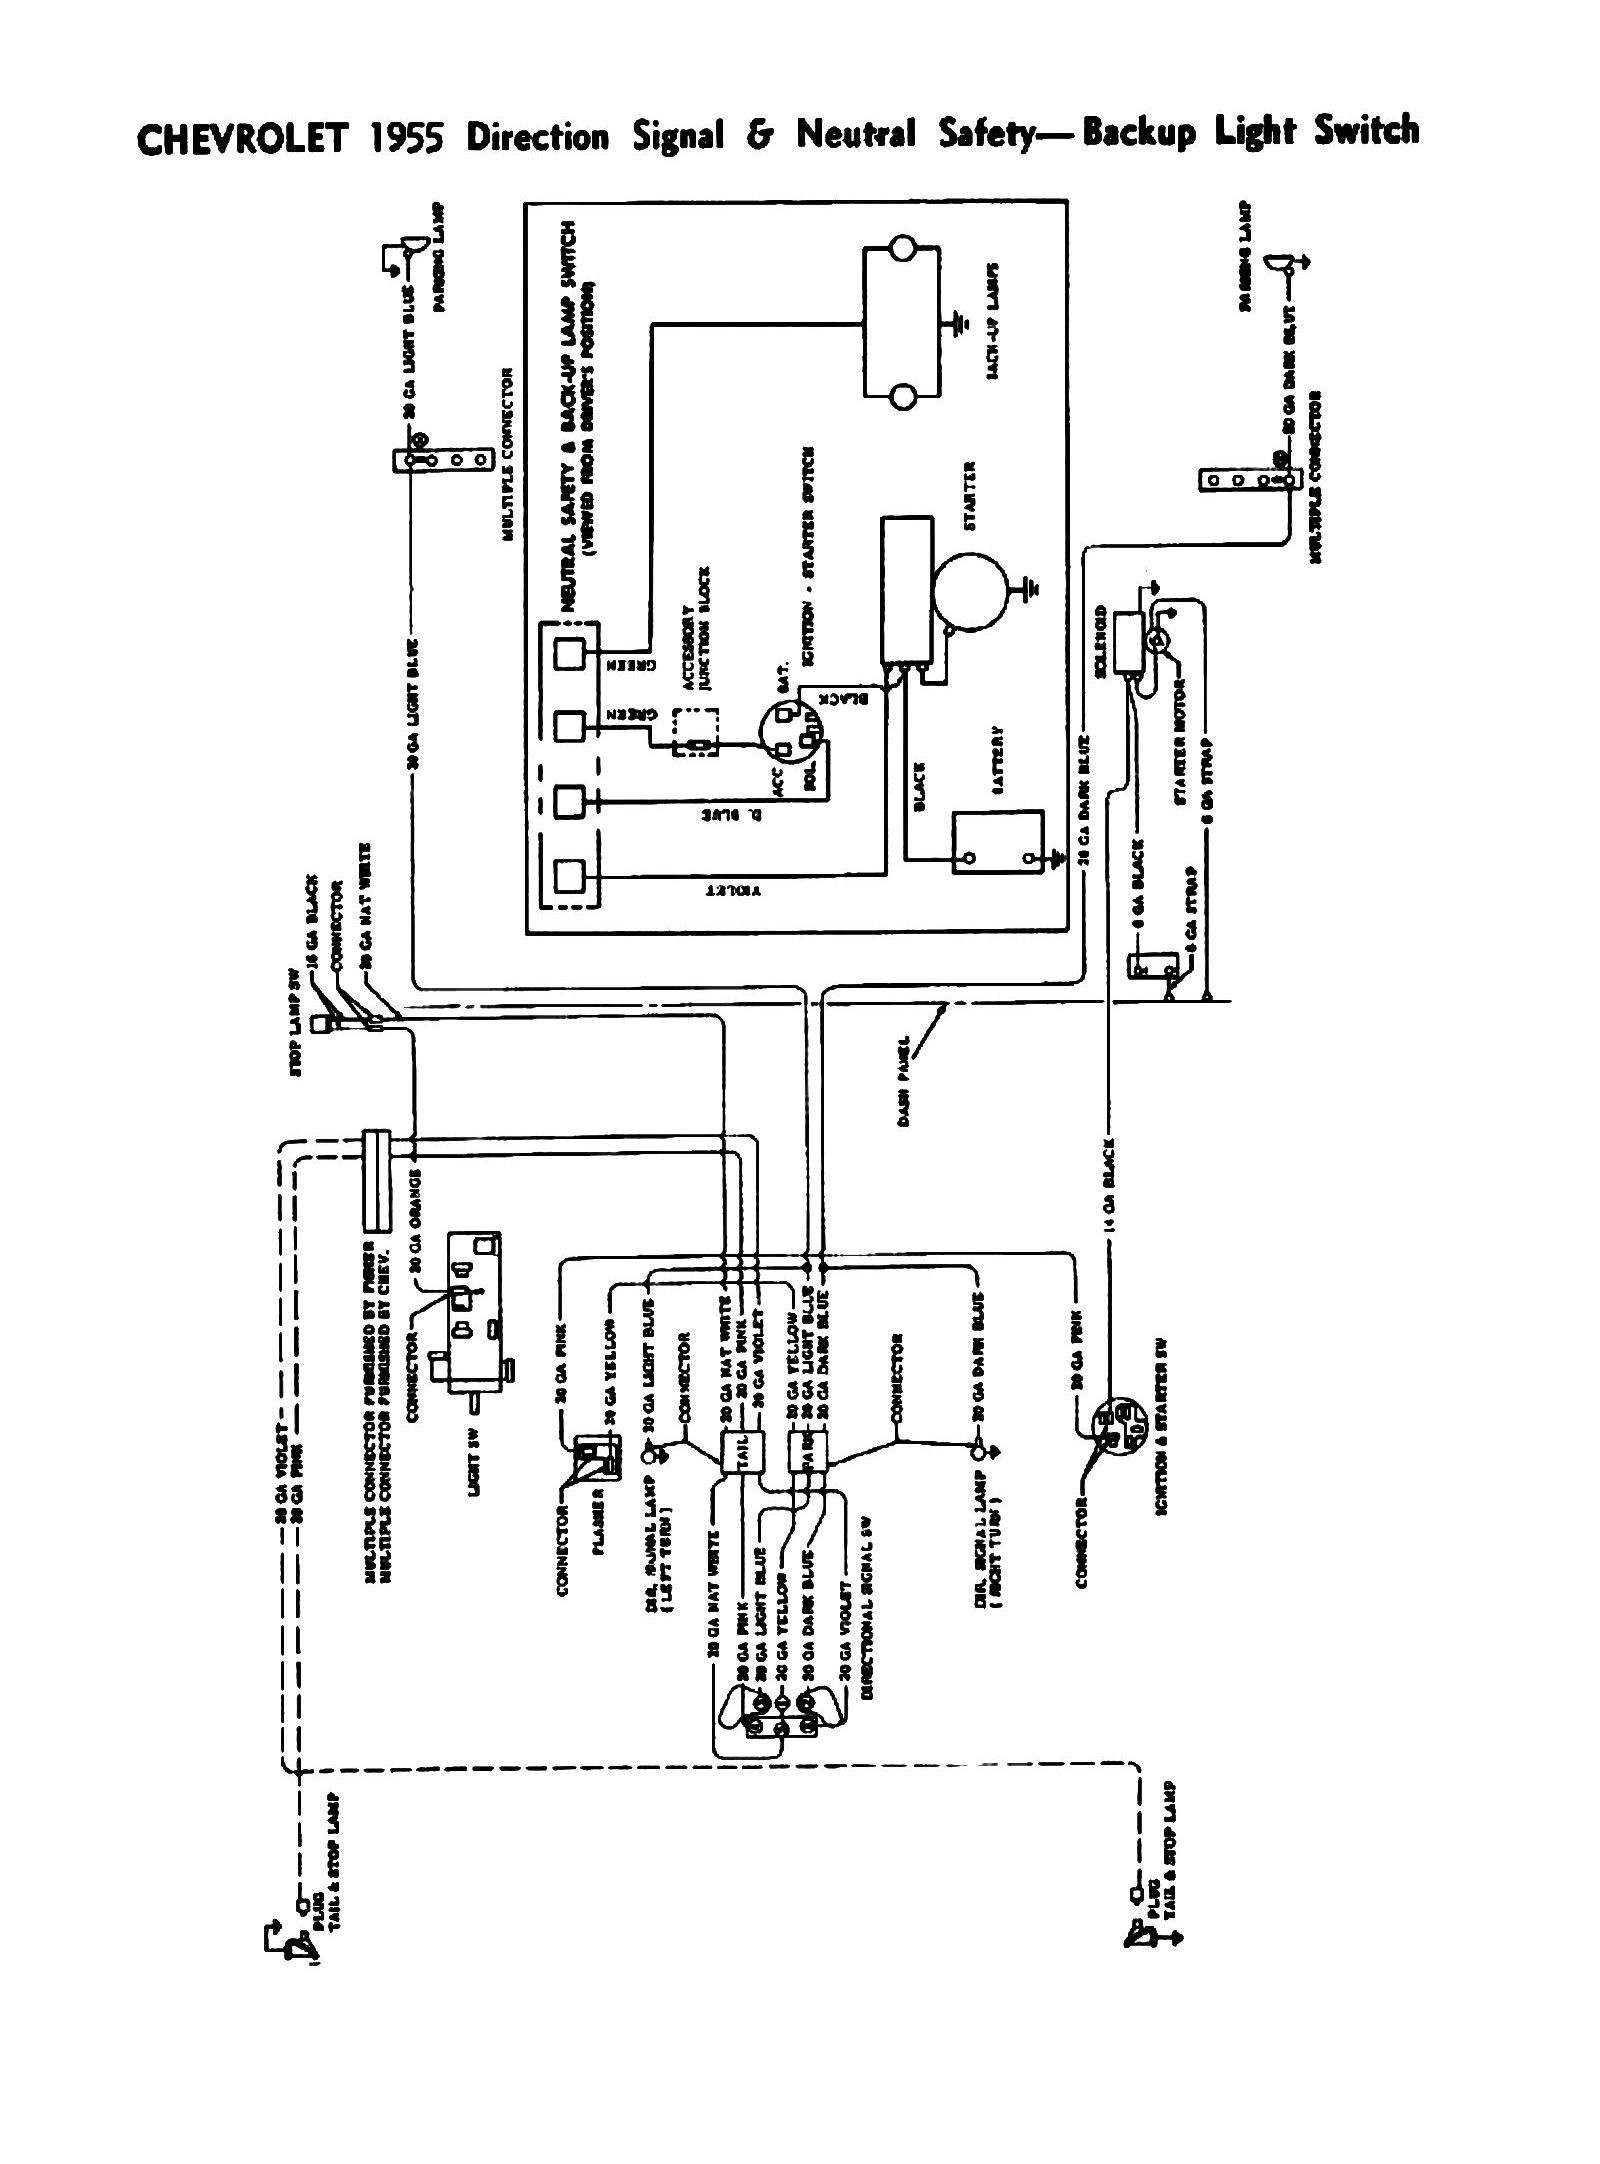 Mtd Ignition Switch Wiring Diagram Wiring Diagram For Mtd Ignition Switch Valid Awesome Wire Diagram For Installing A Solenoid Bobcat I on 1953 Bel Air Wiring Diagram